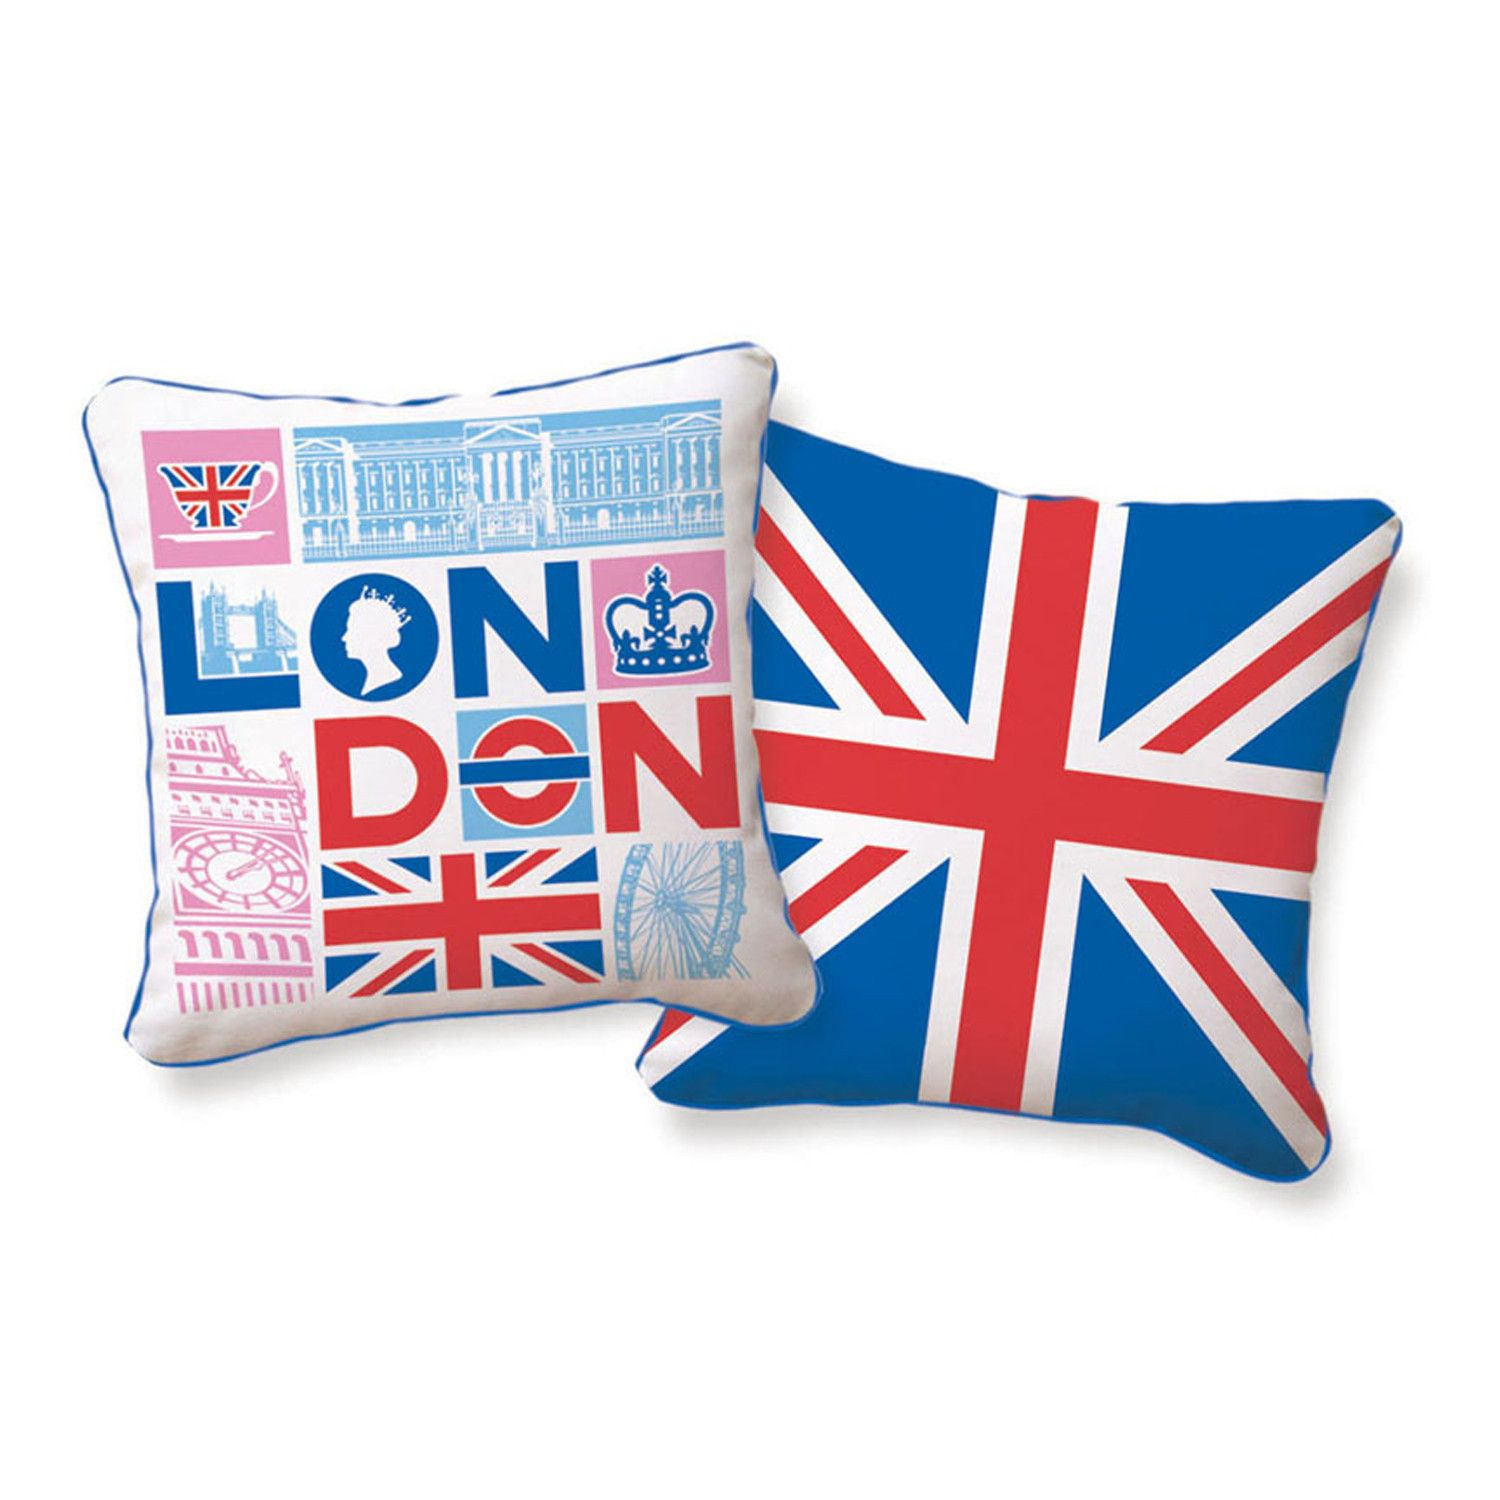 Crazy about anything British, been watching the olympics